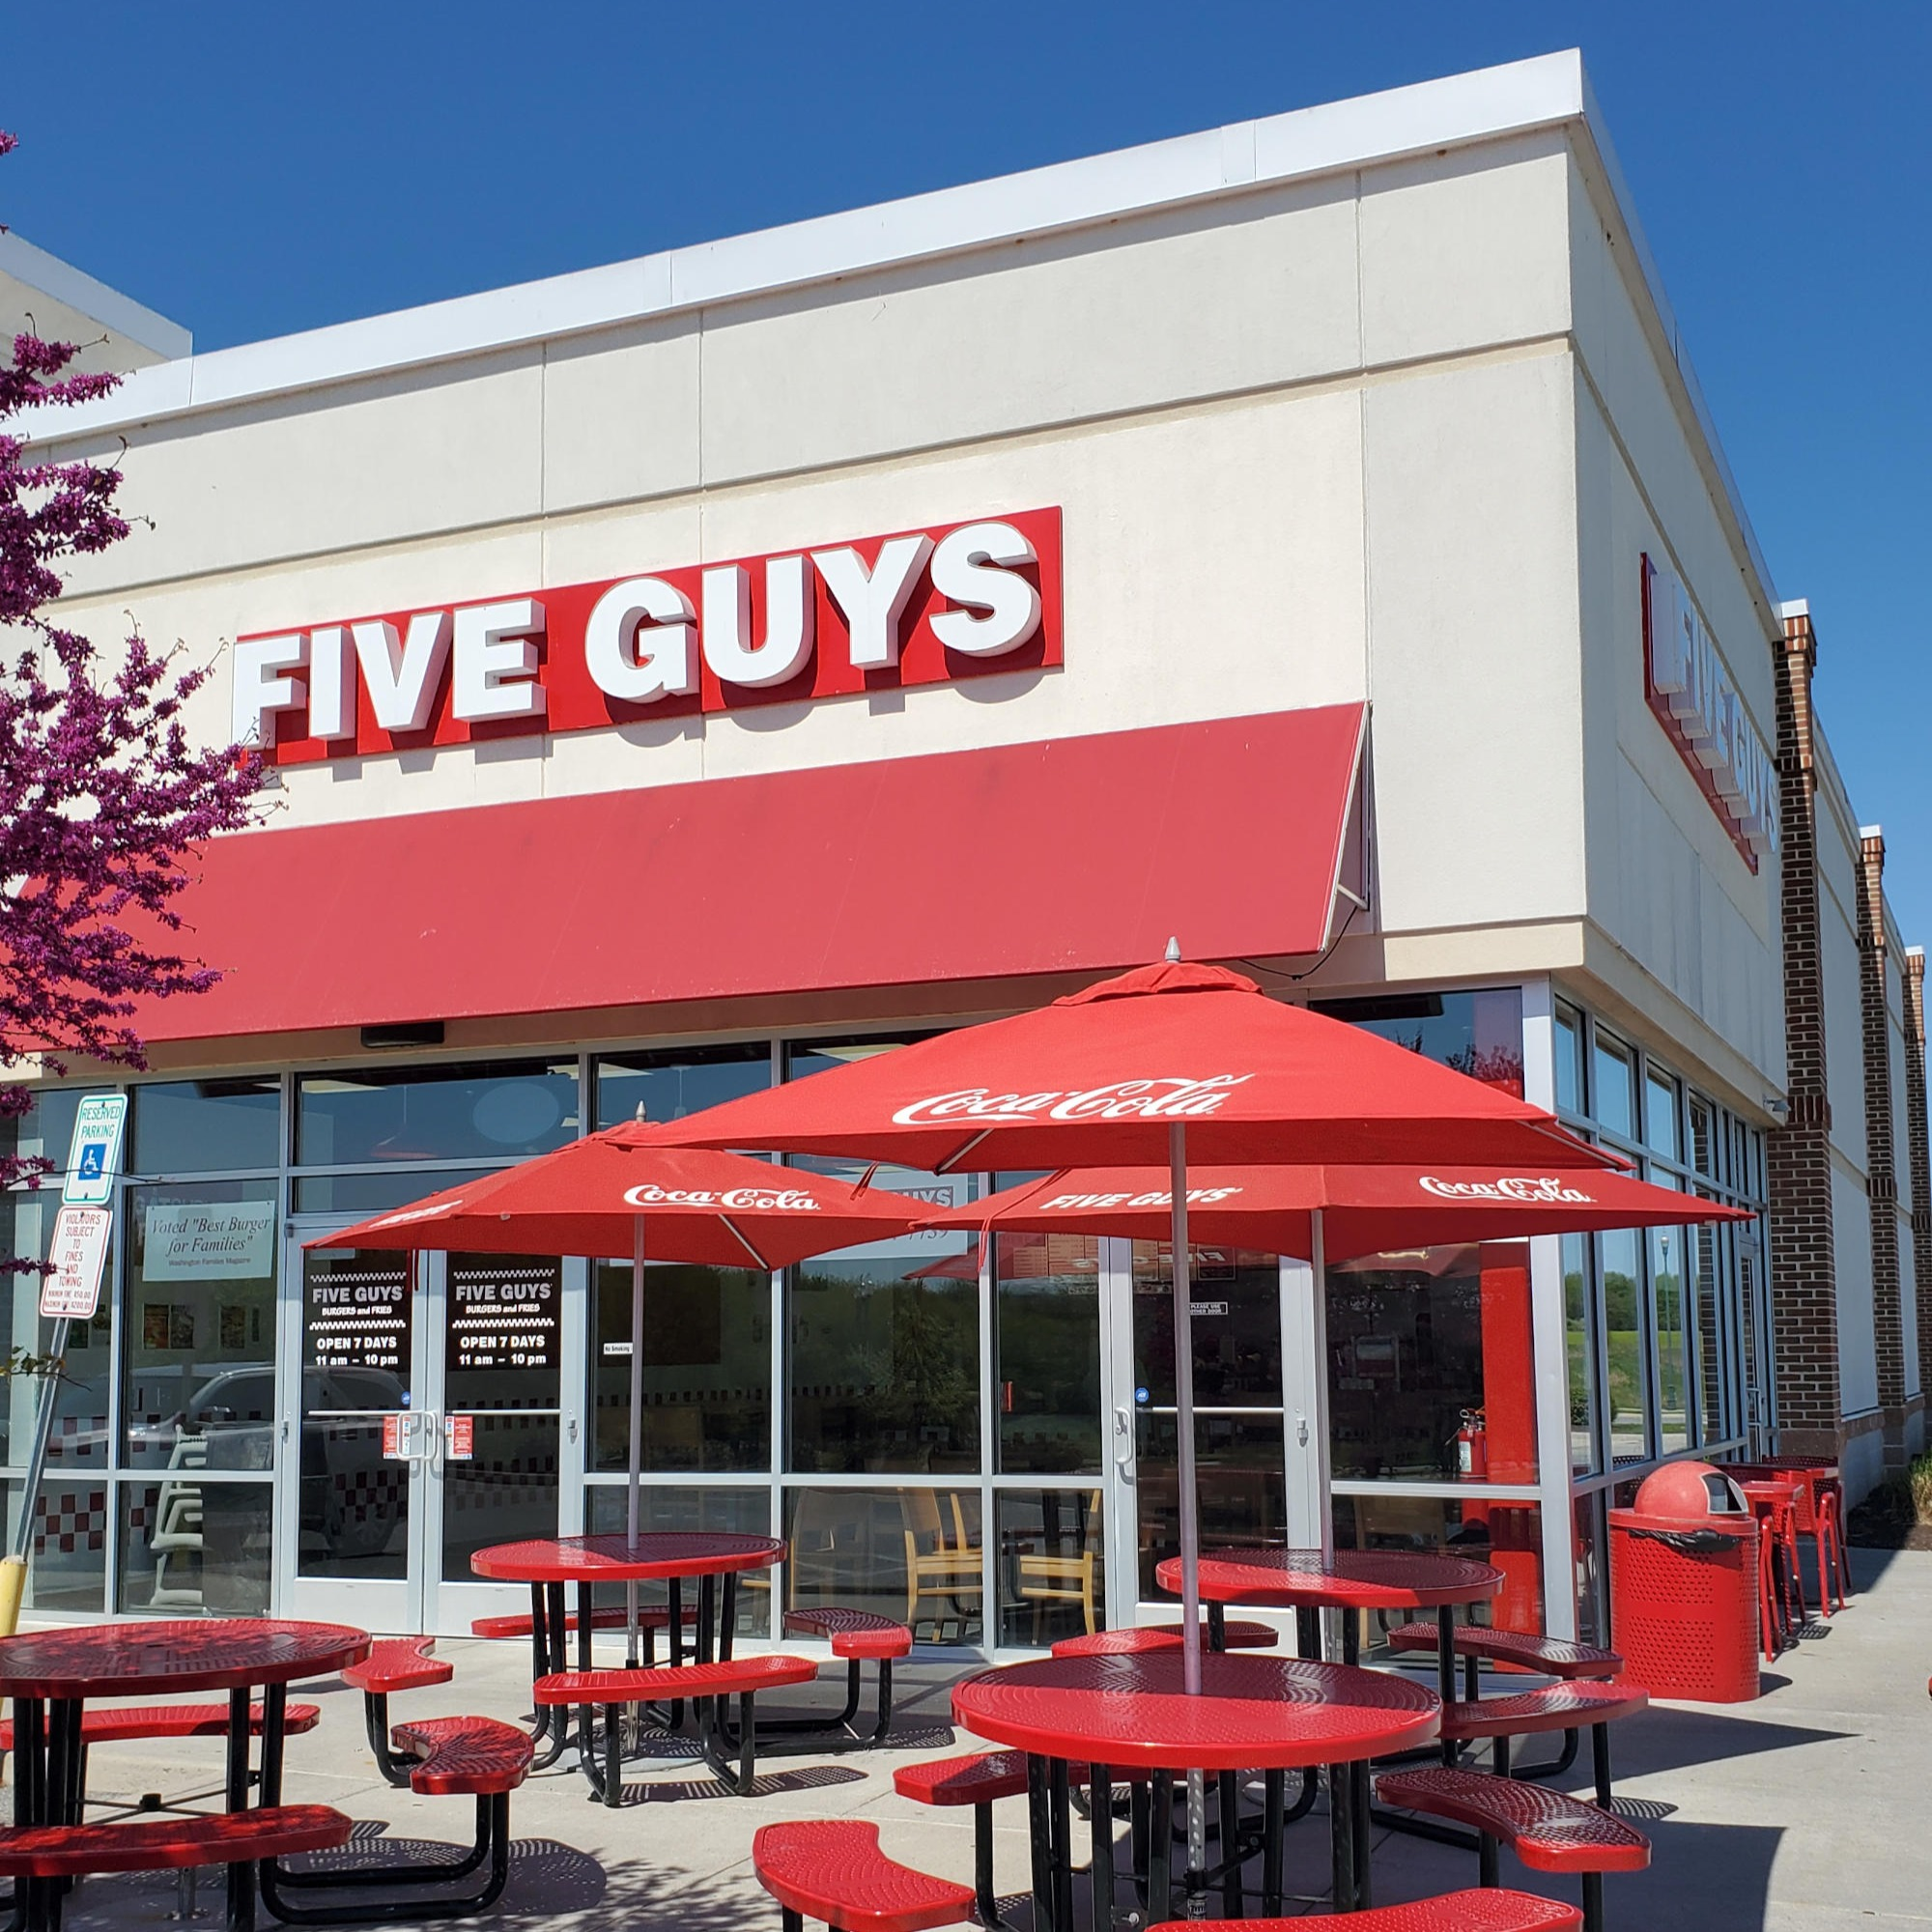 Five Guys at 38 Joshua M. Freeman Blvd. in Ranson, WV.